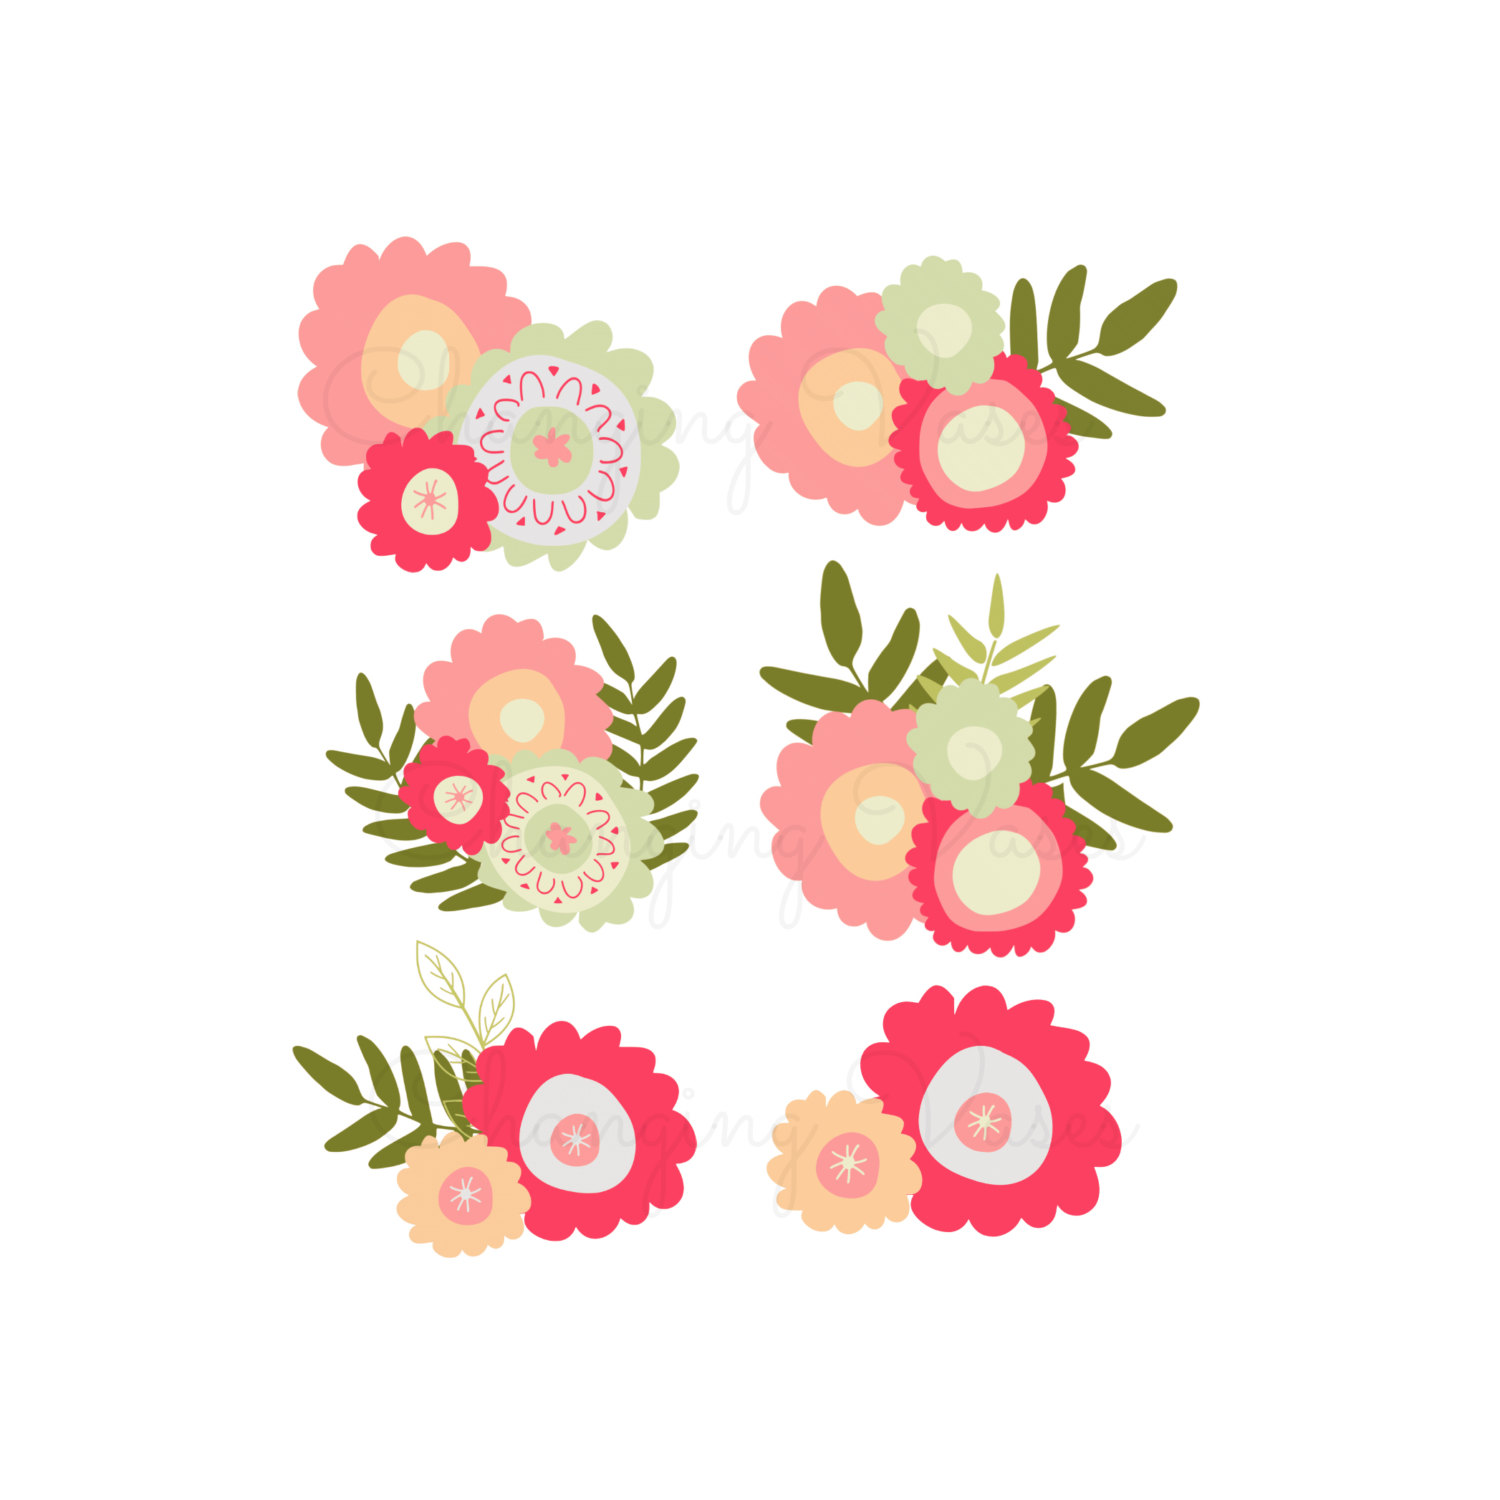 Floral clipart #3, Download drawings